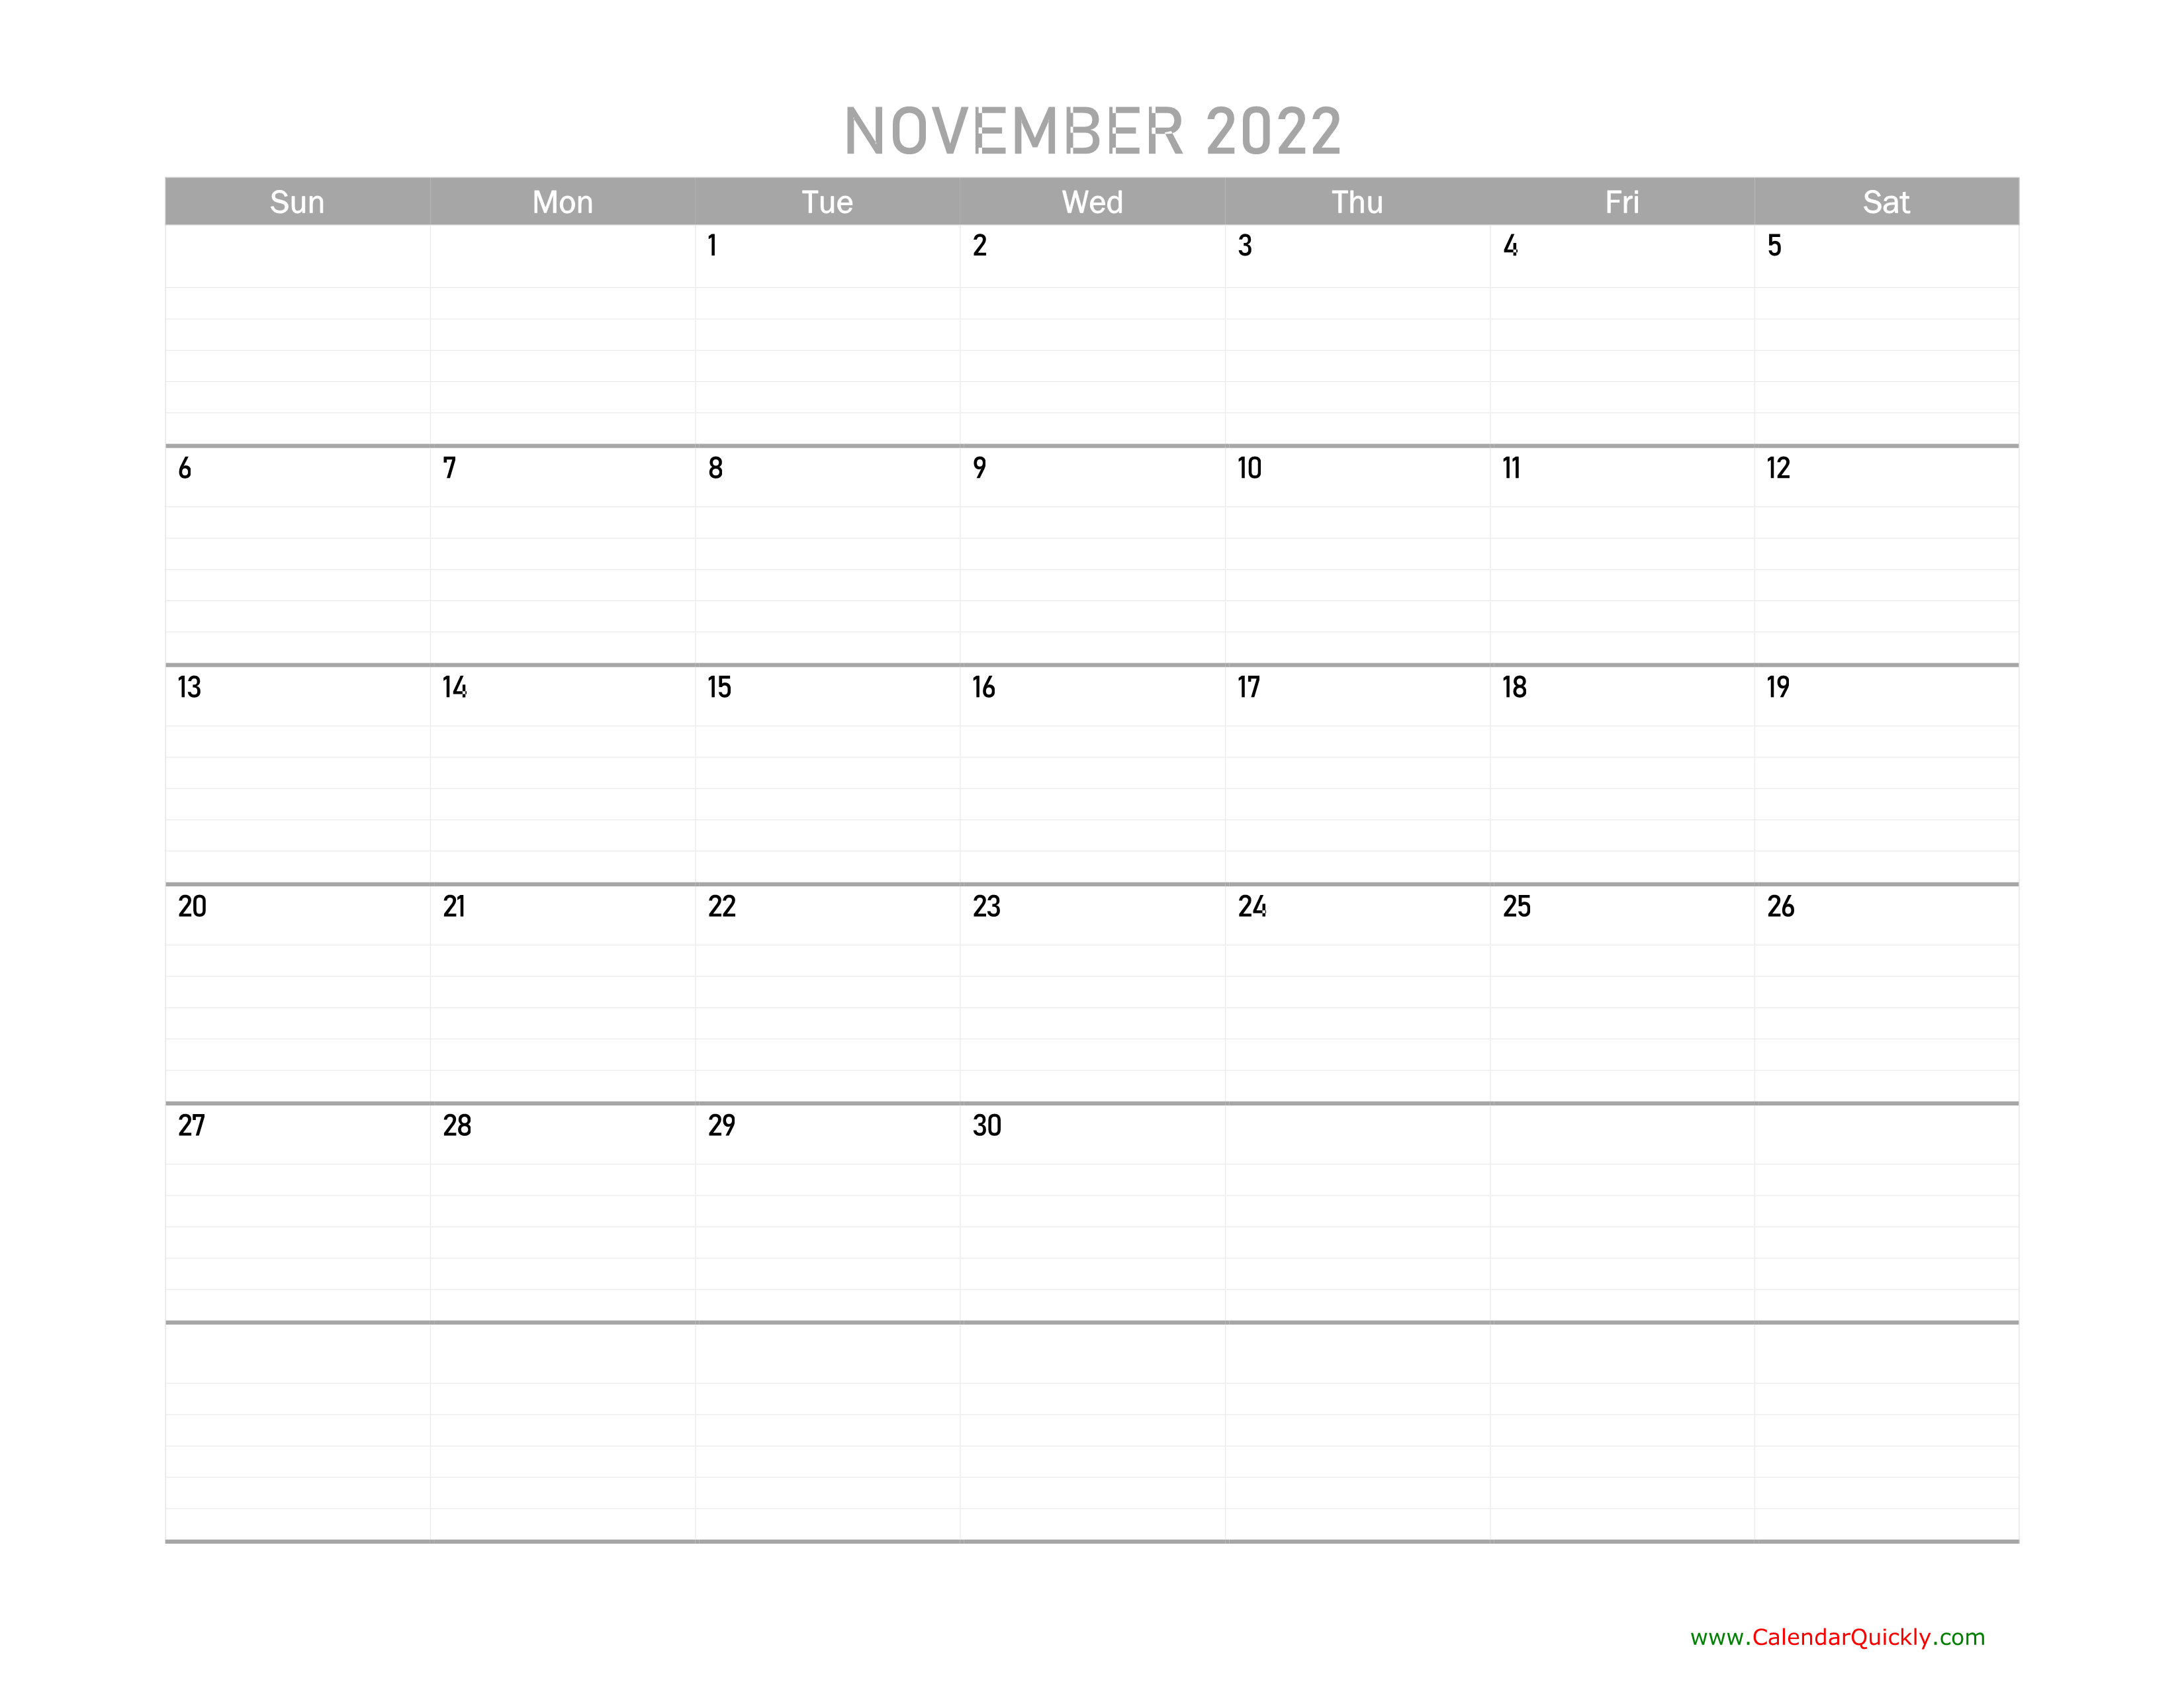 November Calendar 2022 Printable | Calendar Quickly